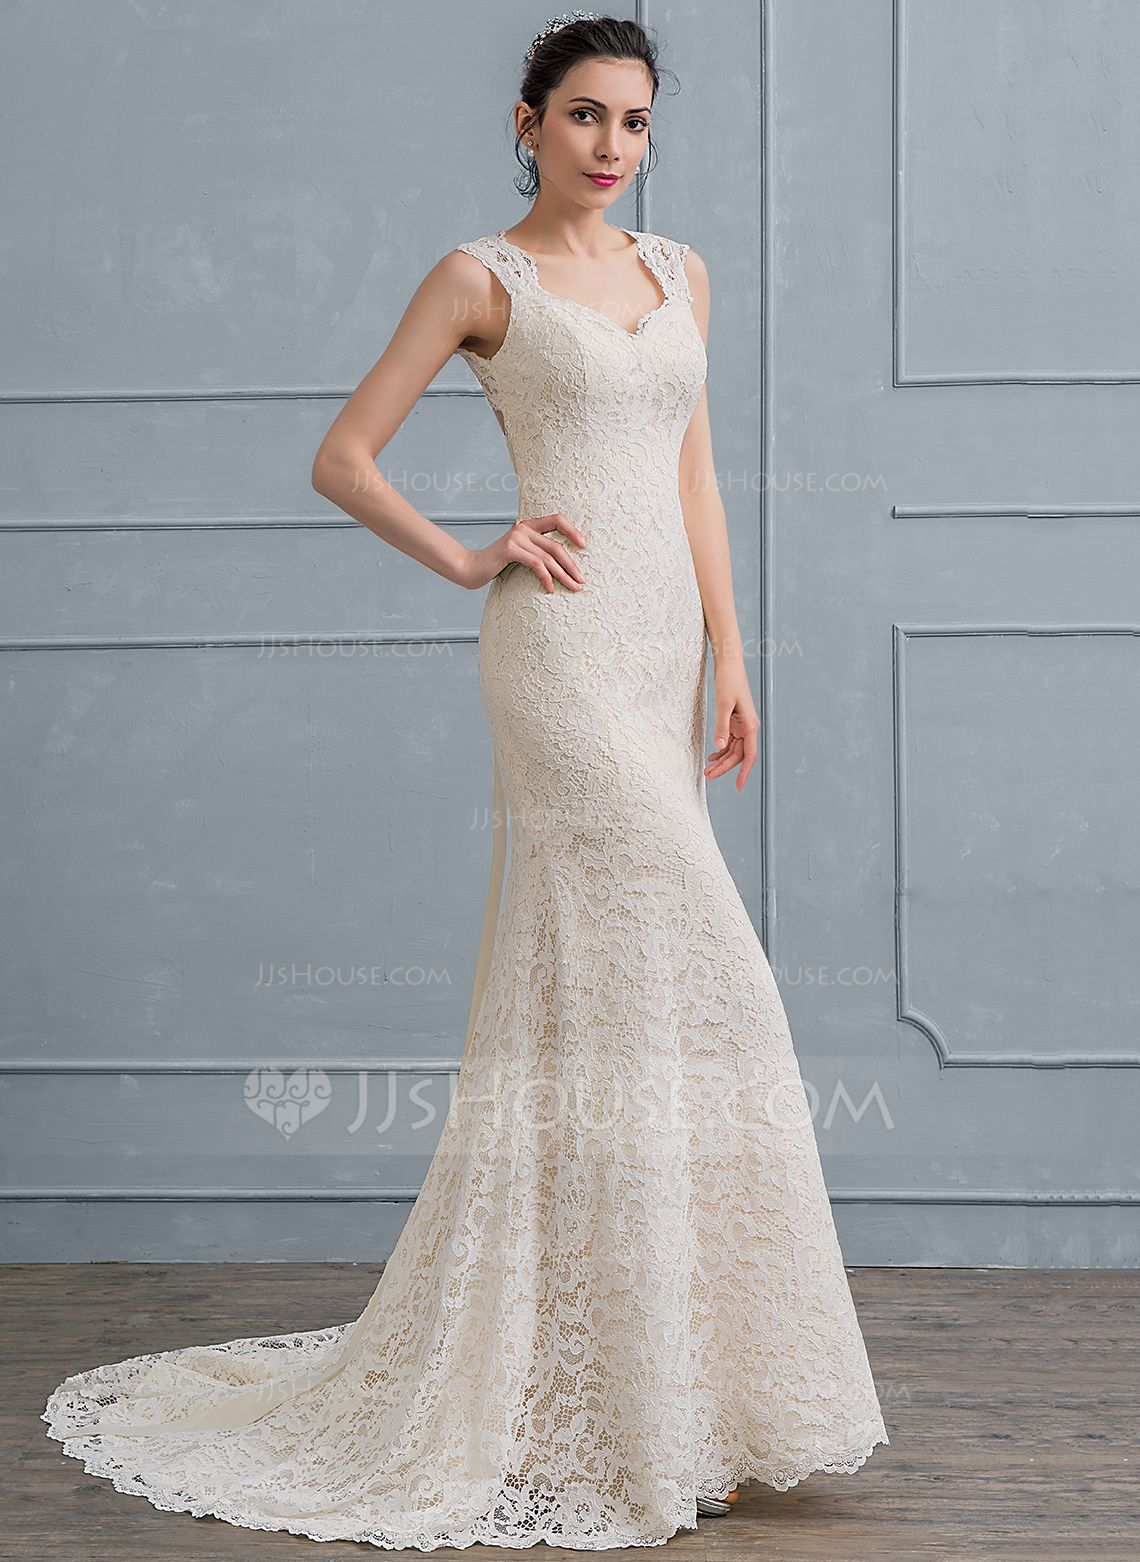 Sheathcolumn sweetheart court train lace wedding dress with bows